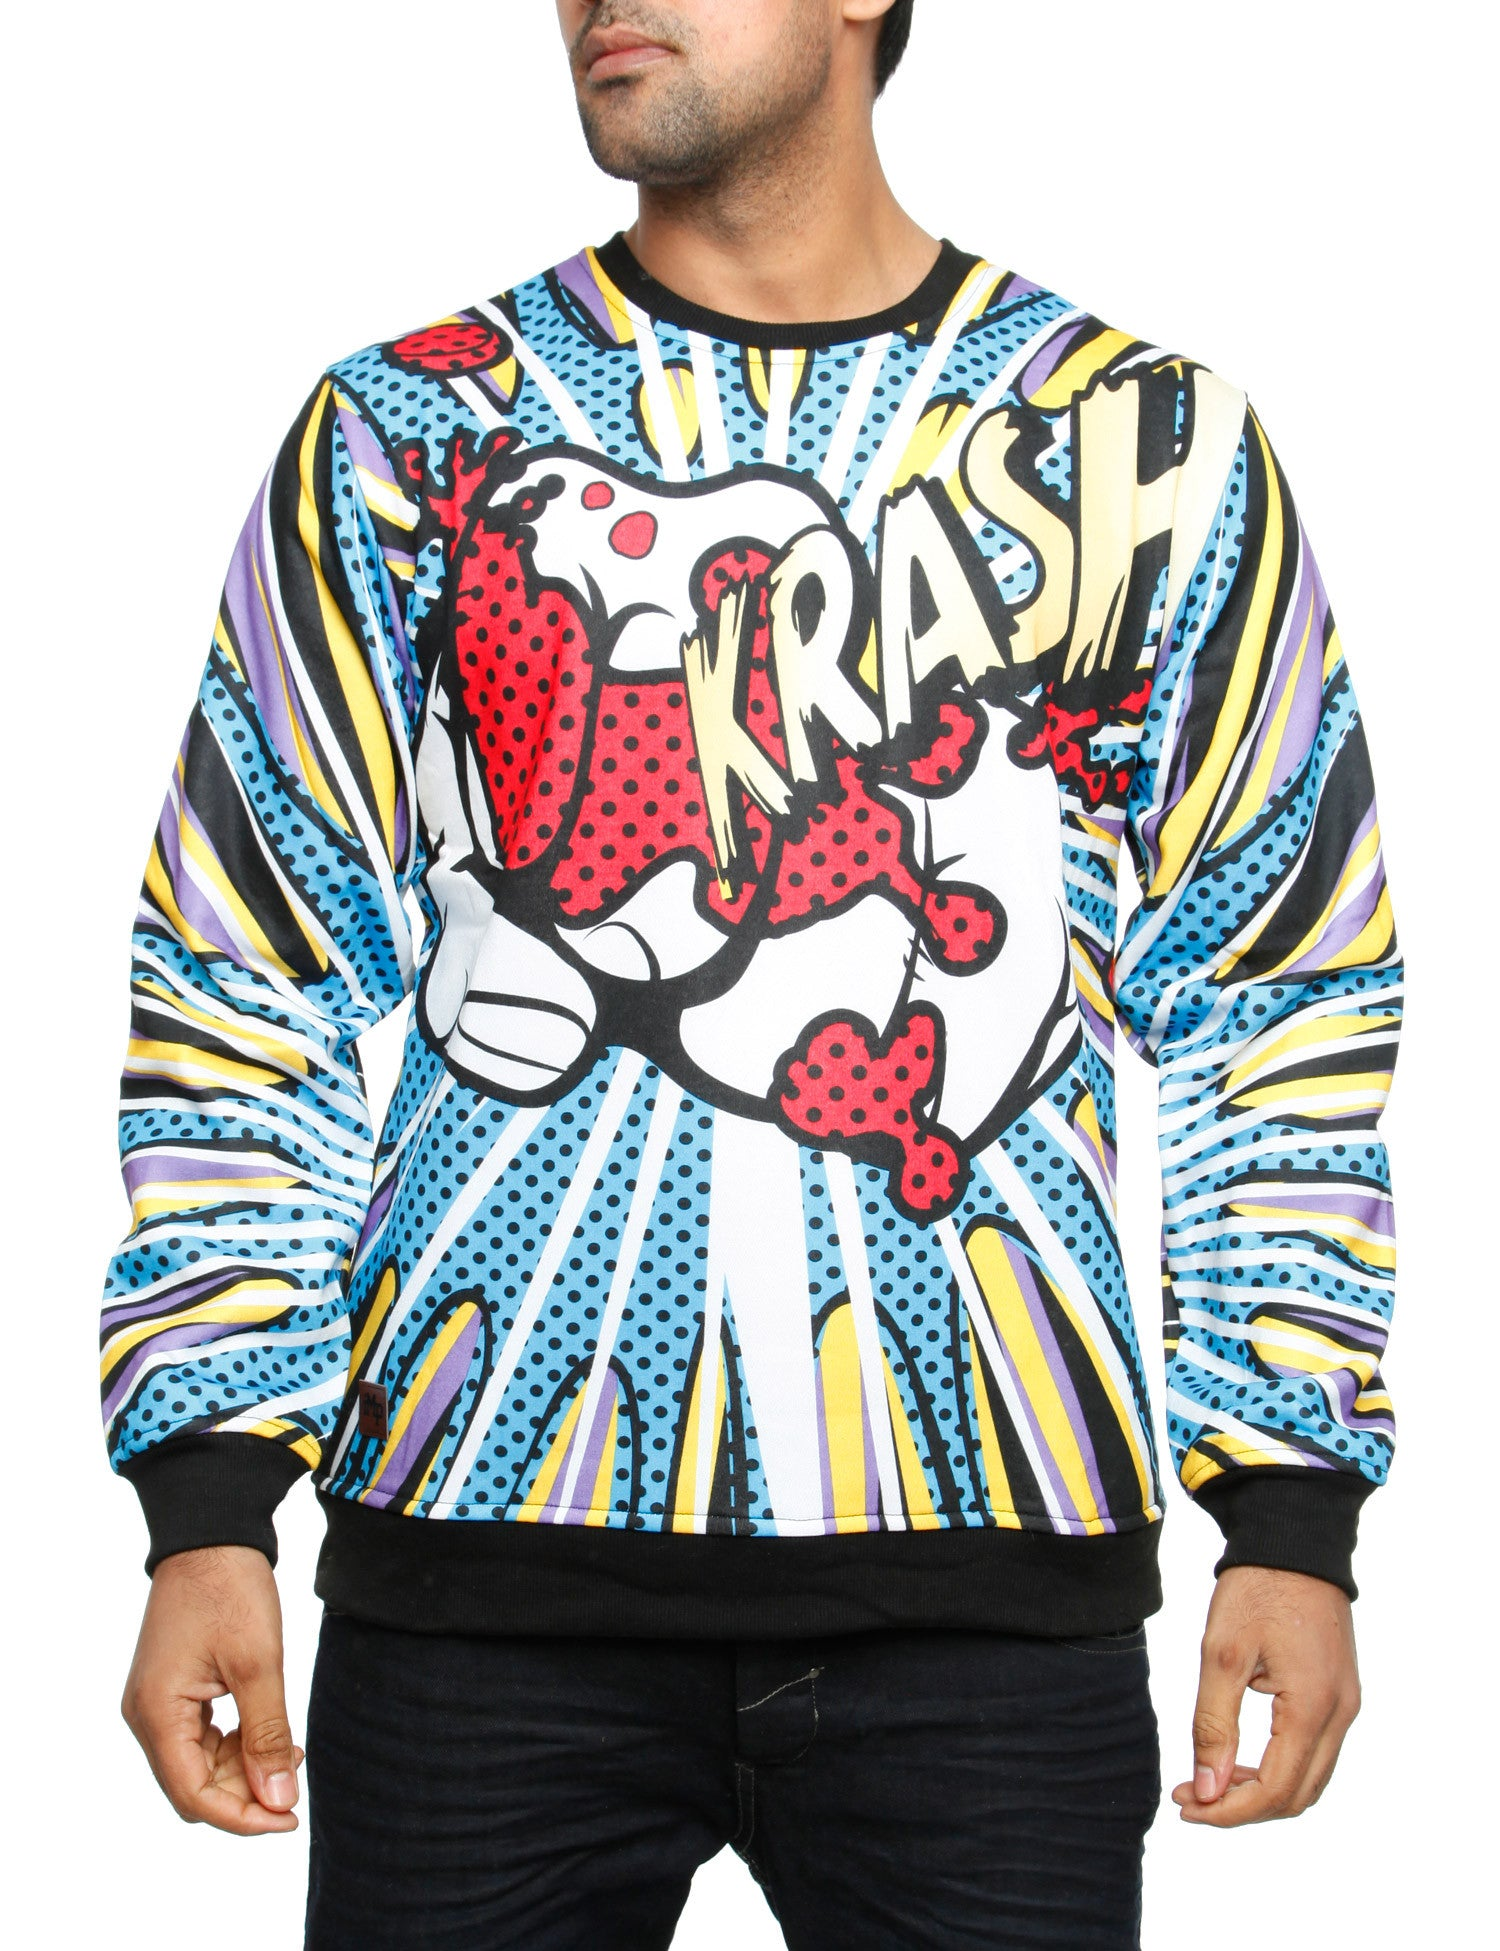 Imperious ?Krush? All-Over Sweatshirt CS535 Blue